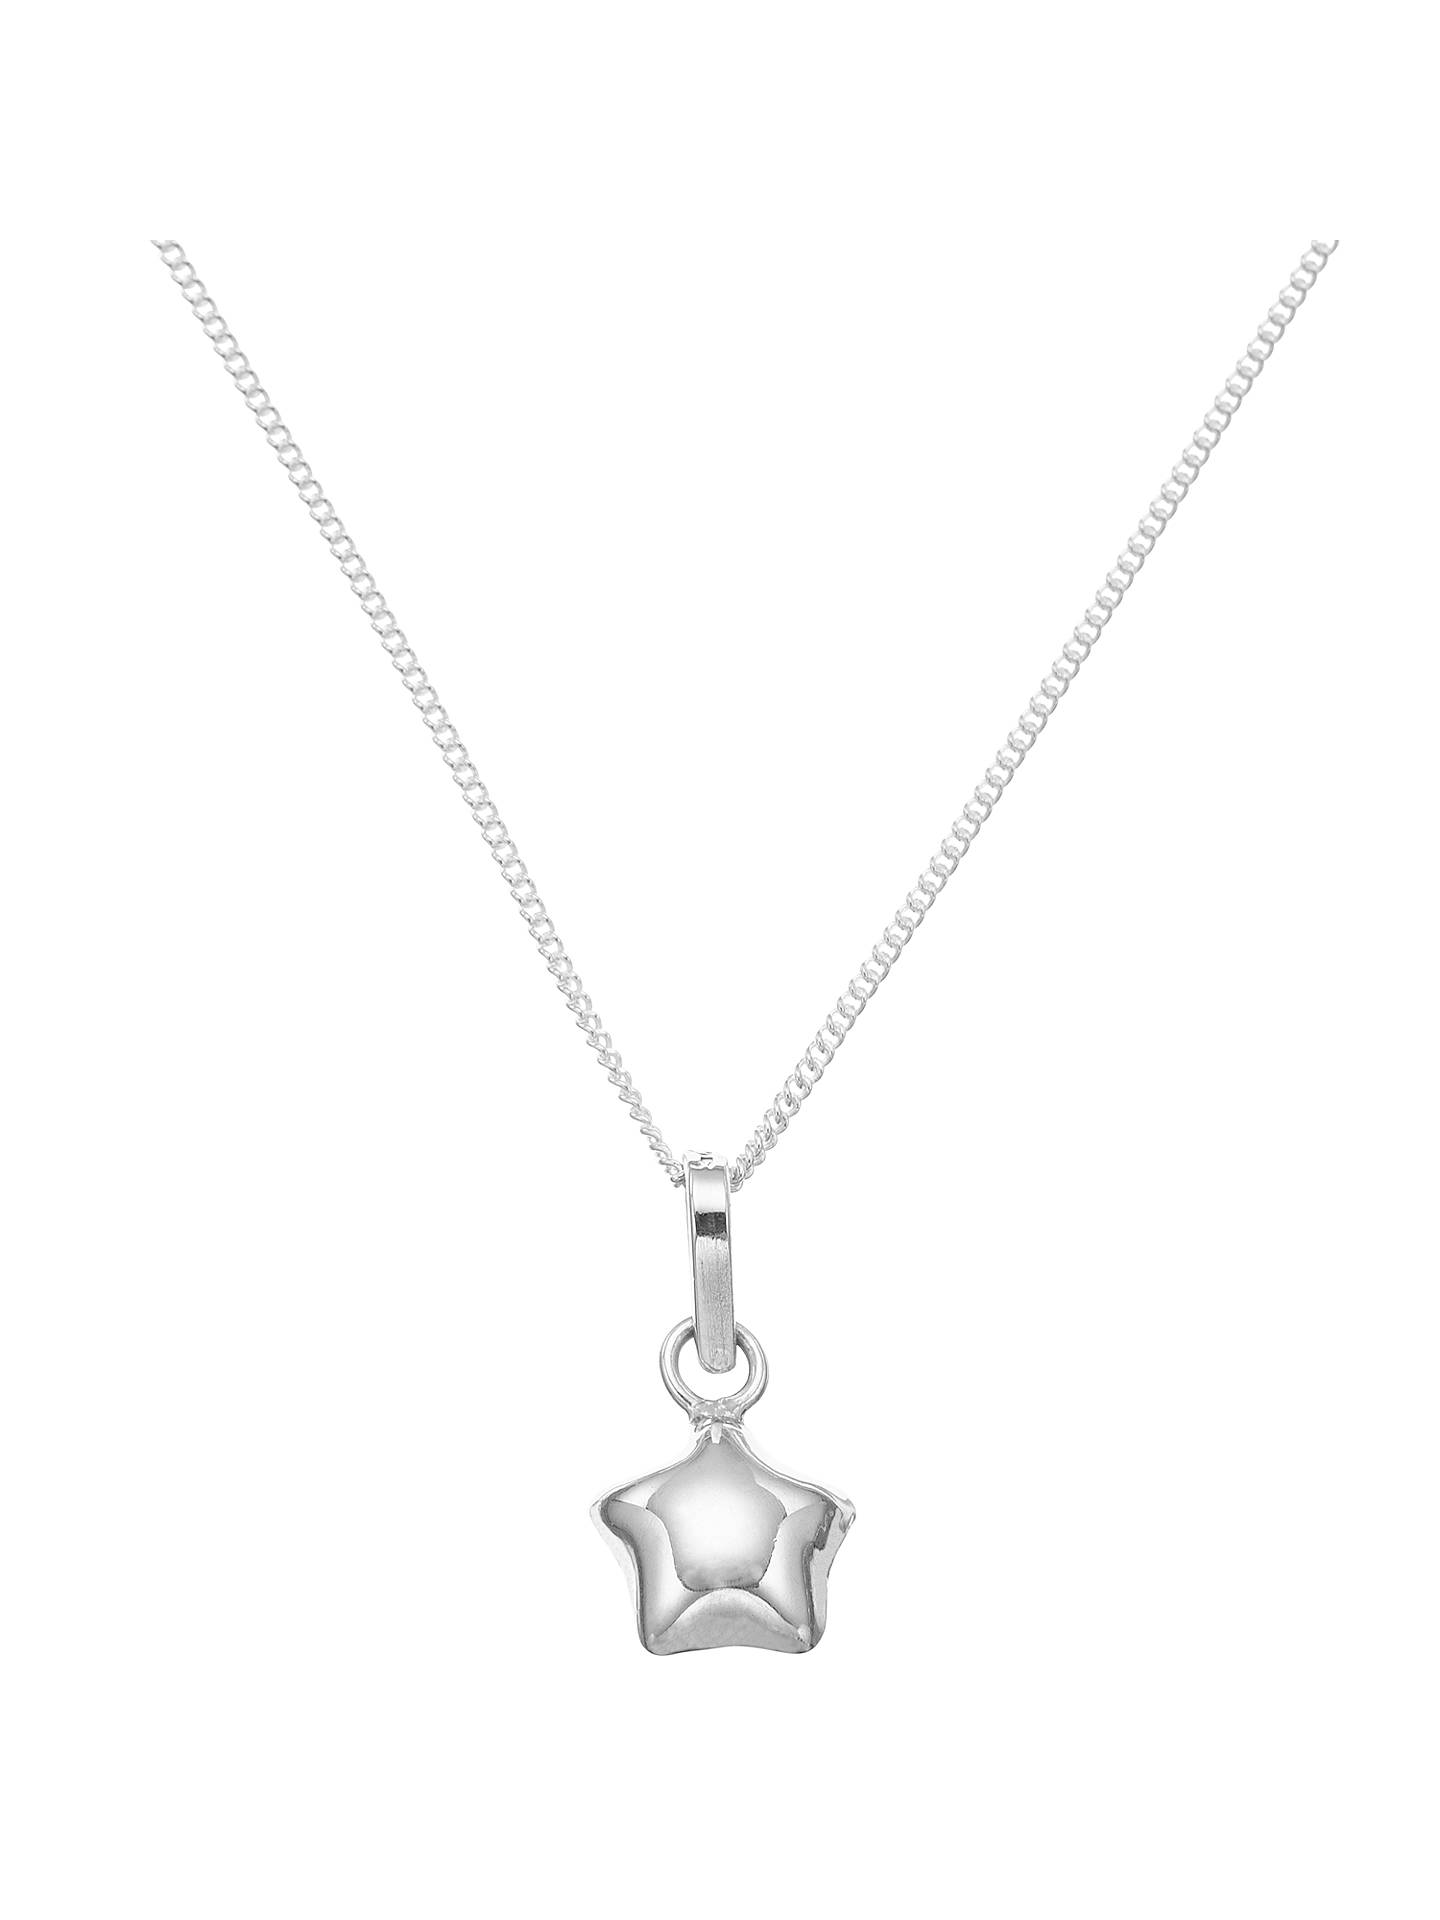 Buy John Lewis & Partners Sterling Silver Lucky Star Necklace Online at johnlewis.com